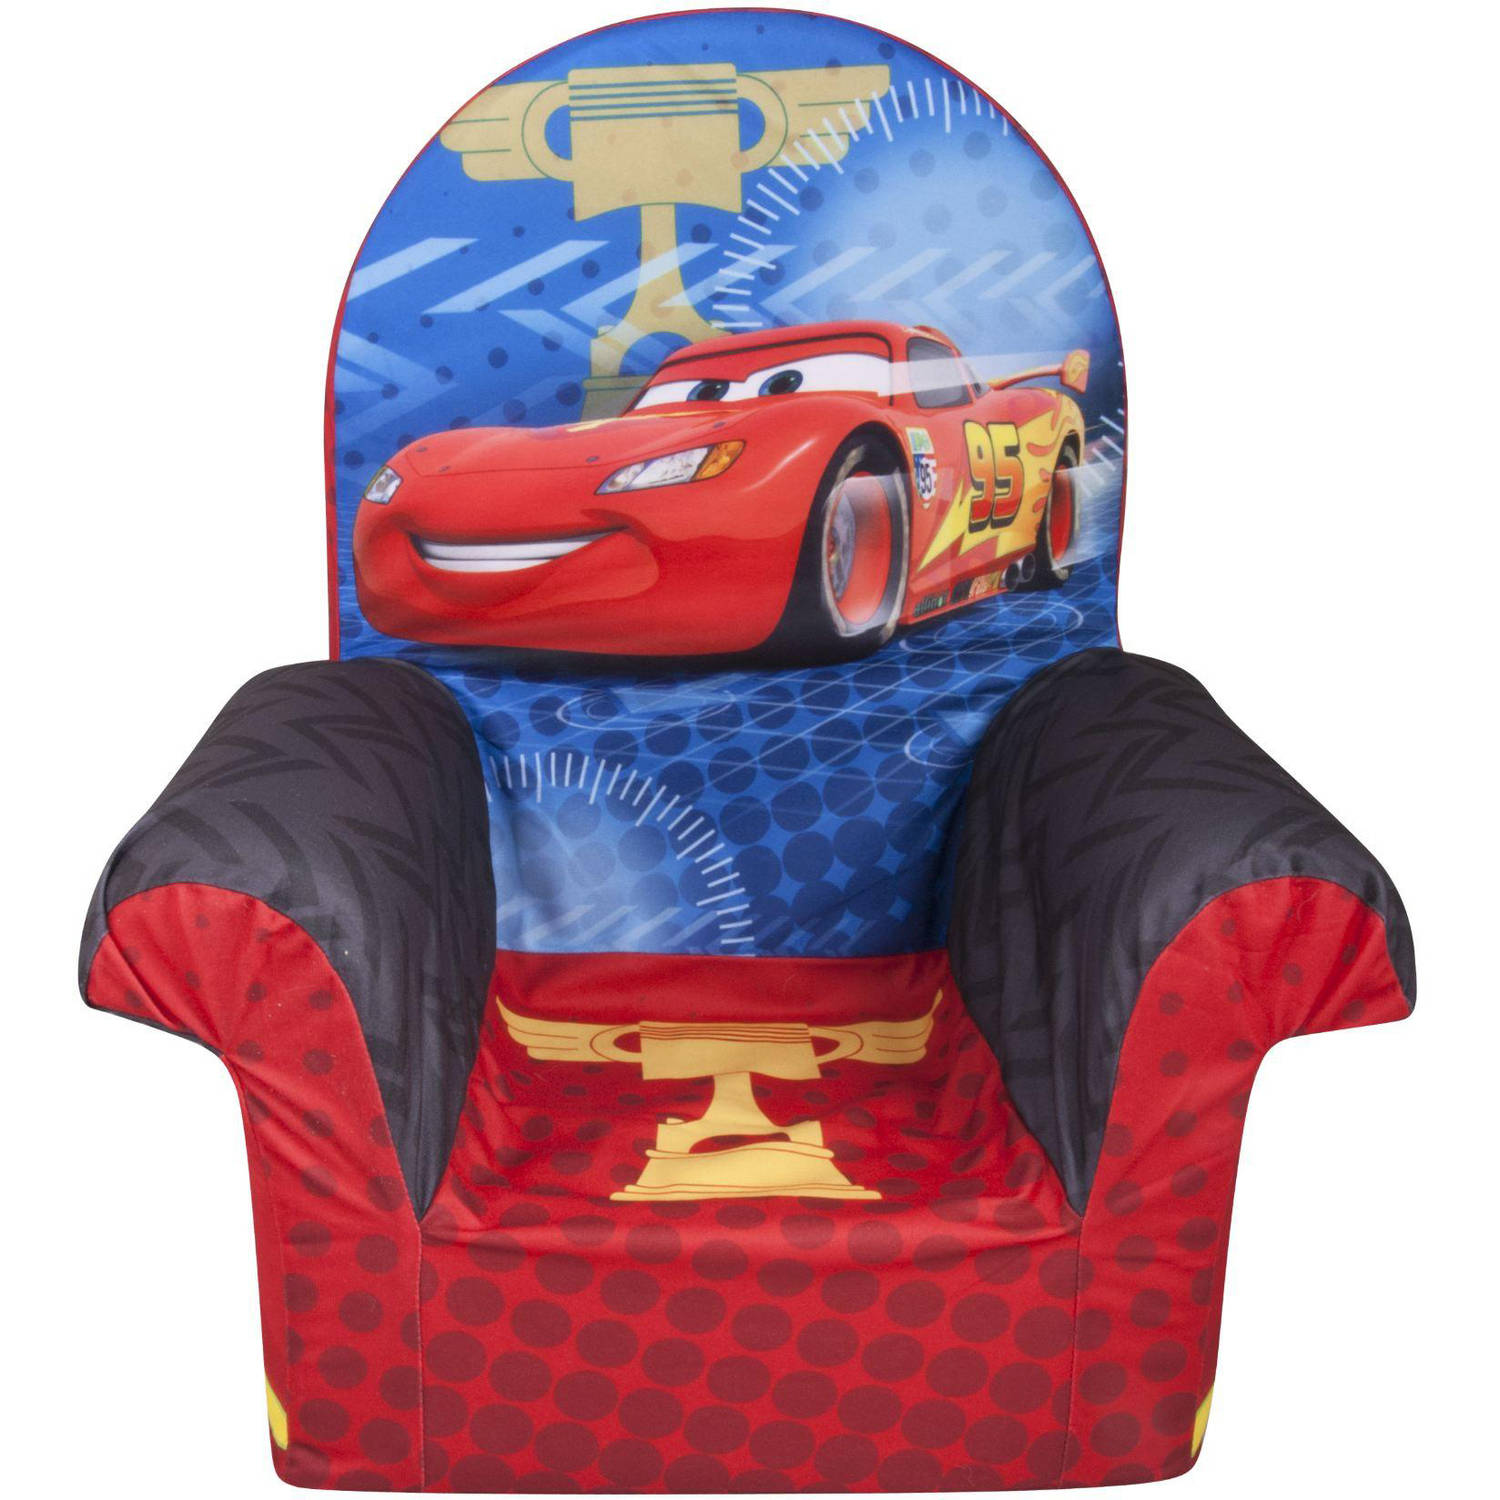 Marshmallow High Back Chair, Disney Cars 2